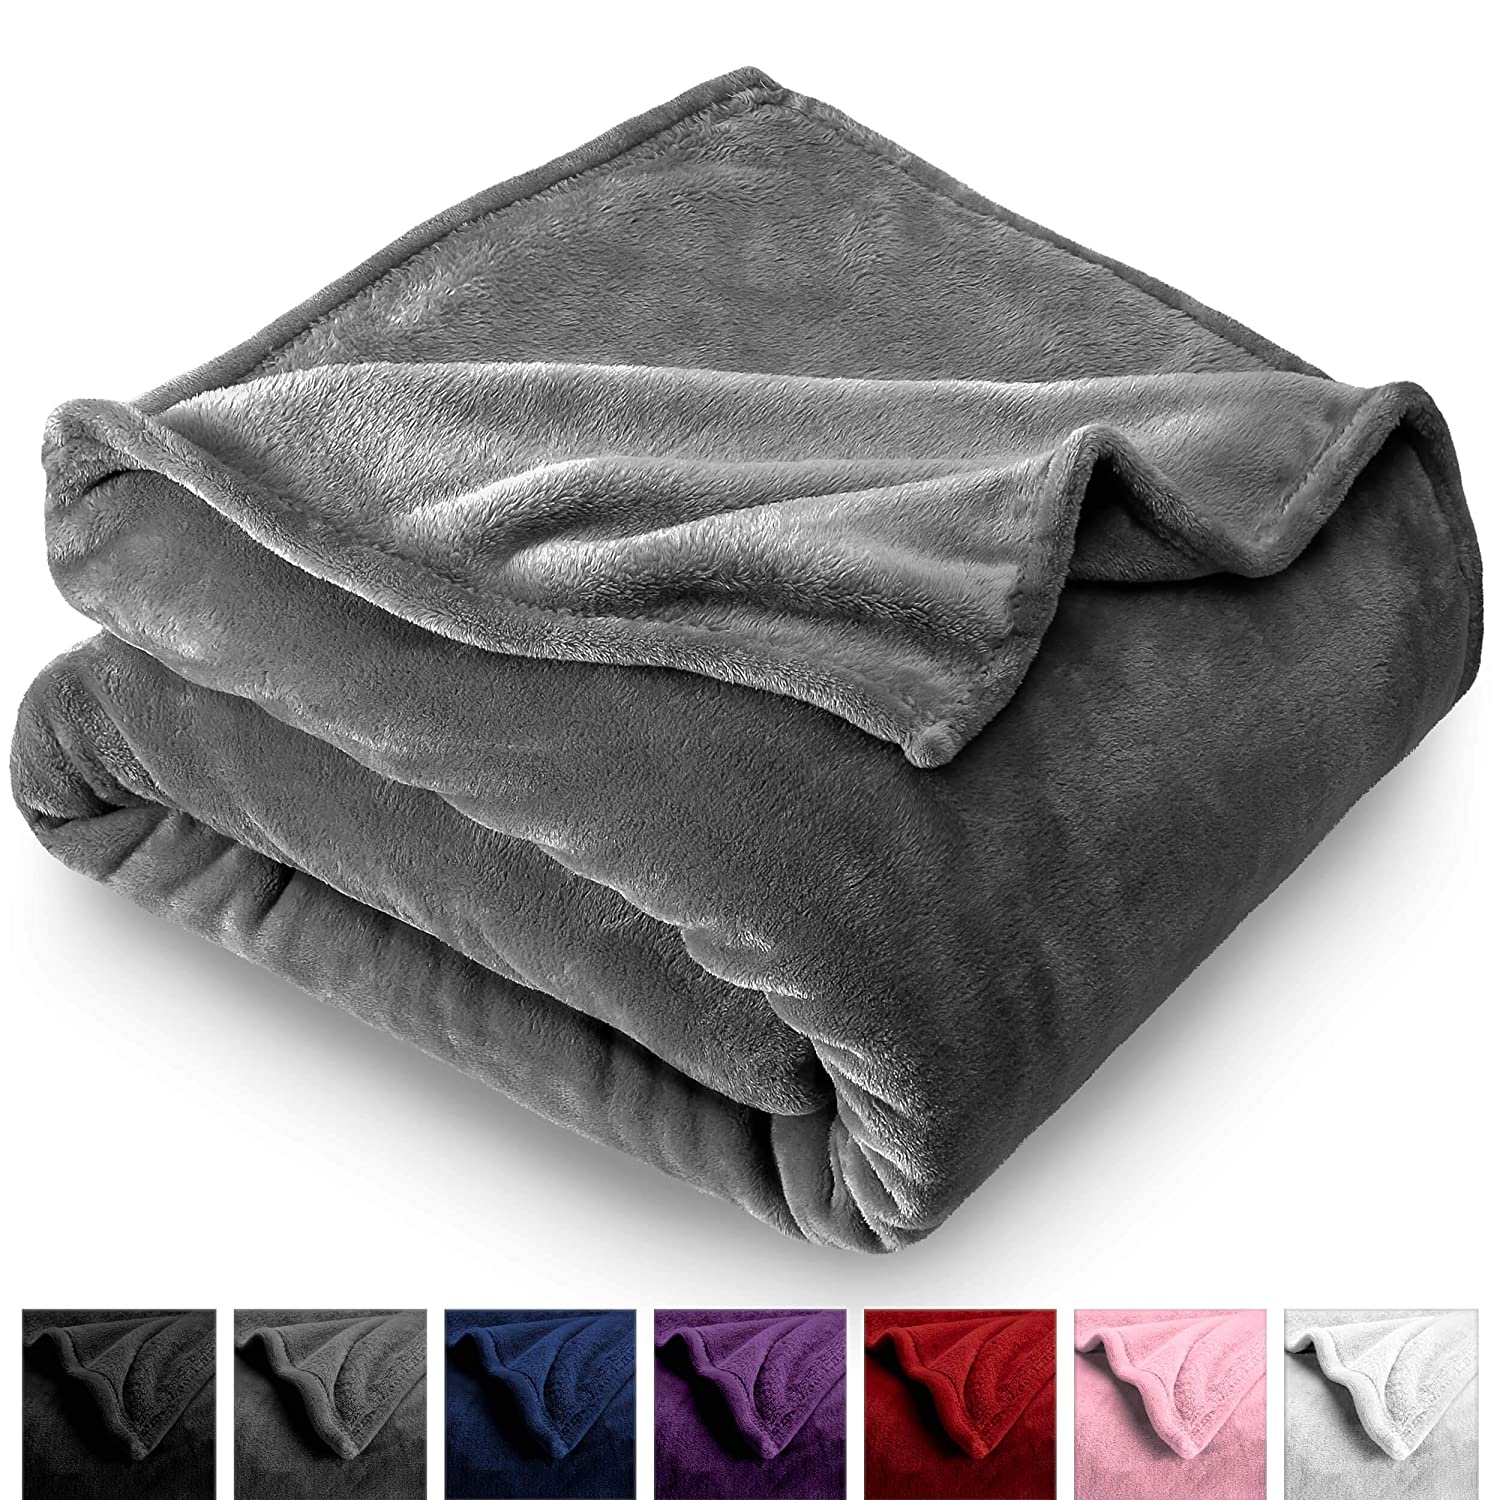 Bare Home Microplush Velvet Fleece Blanket - King Size - Ultra-Soft - Luxurious Fuzzy Fleece Fur - Cozy Lightweight - Easy Care - All Season Premium Bed Blanket (King, Grey)